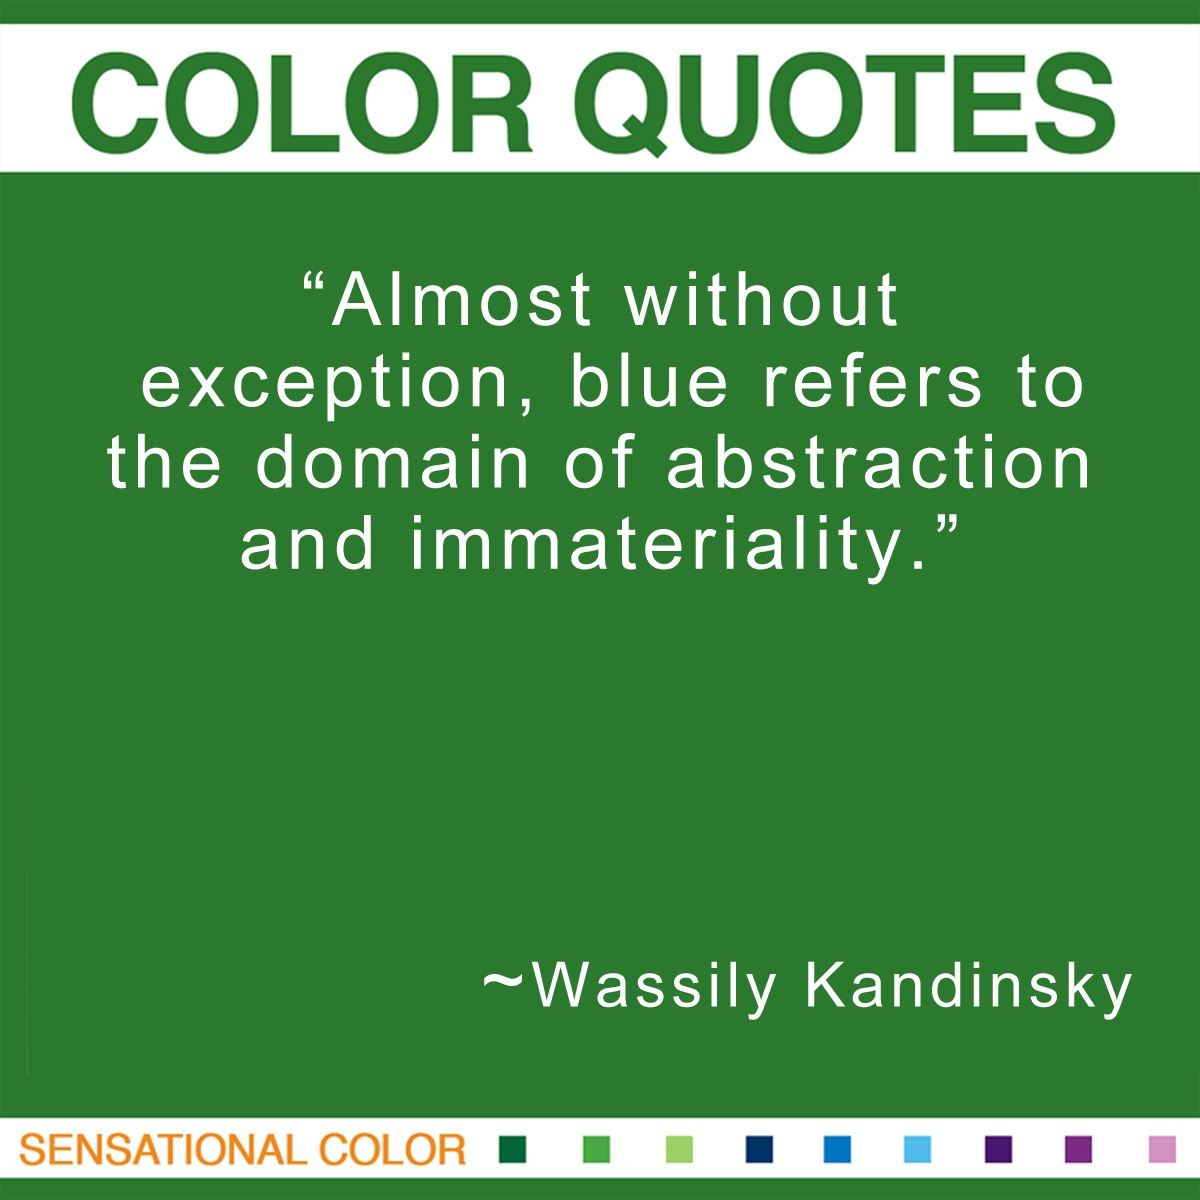 """Almost without exception, blue refers to the domain of abstraction and immateriality."" - Wassily Kandinsky"